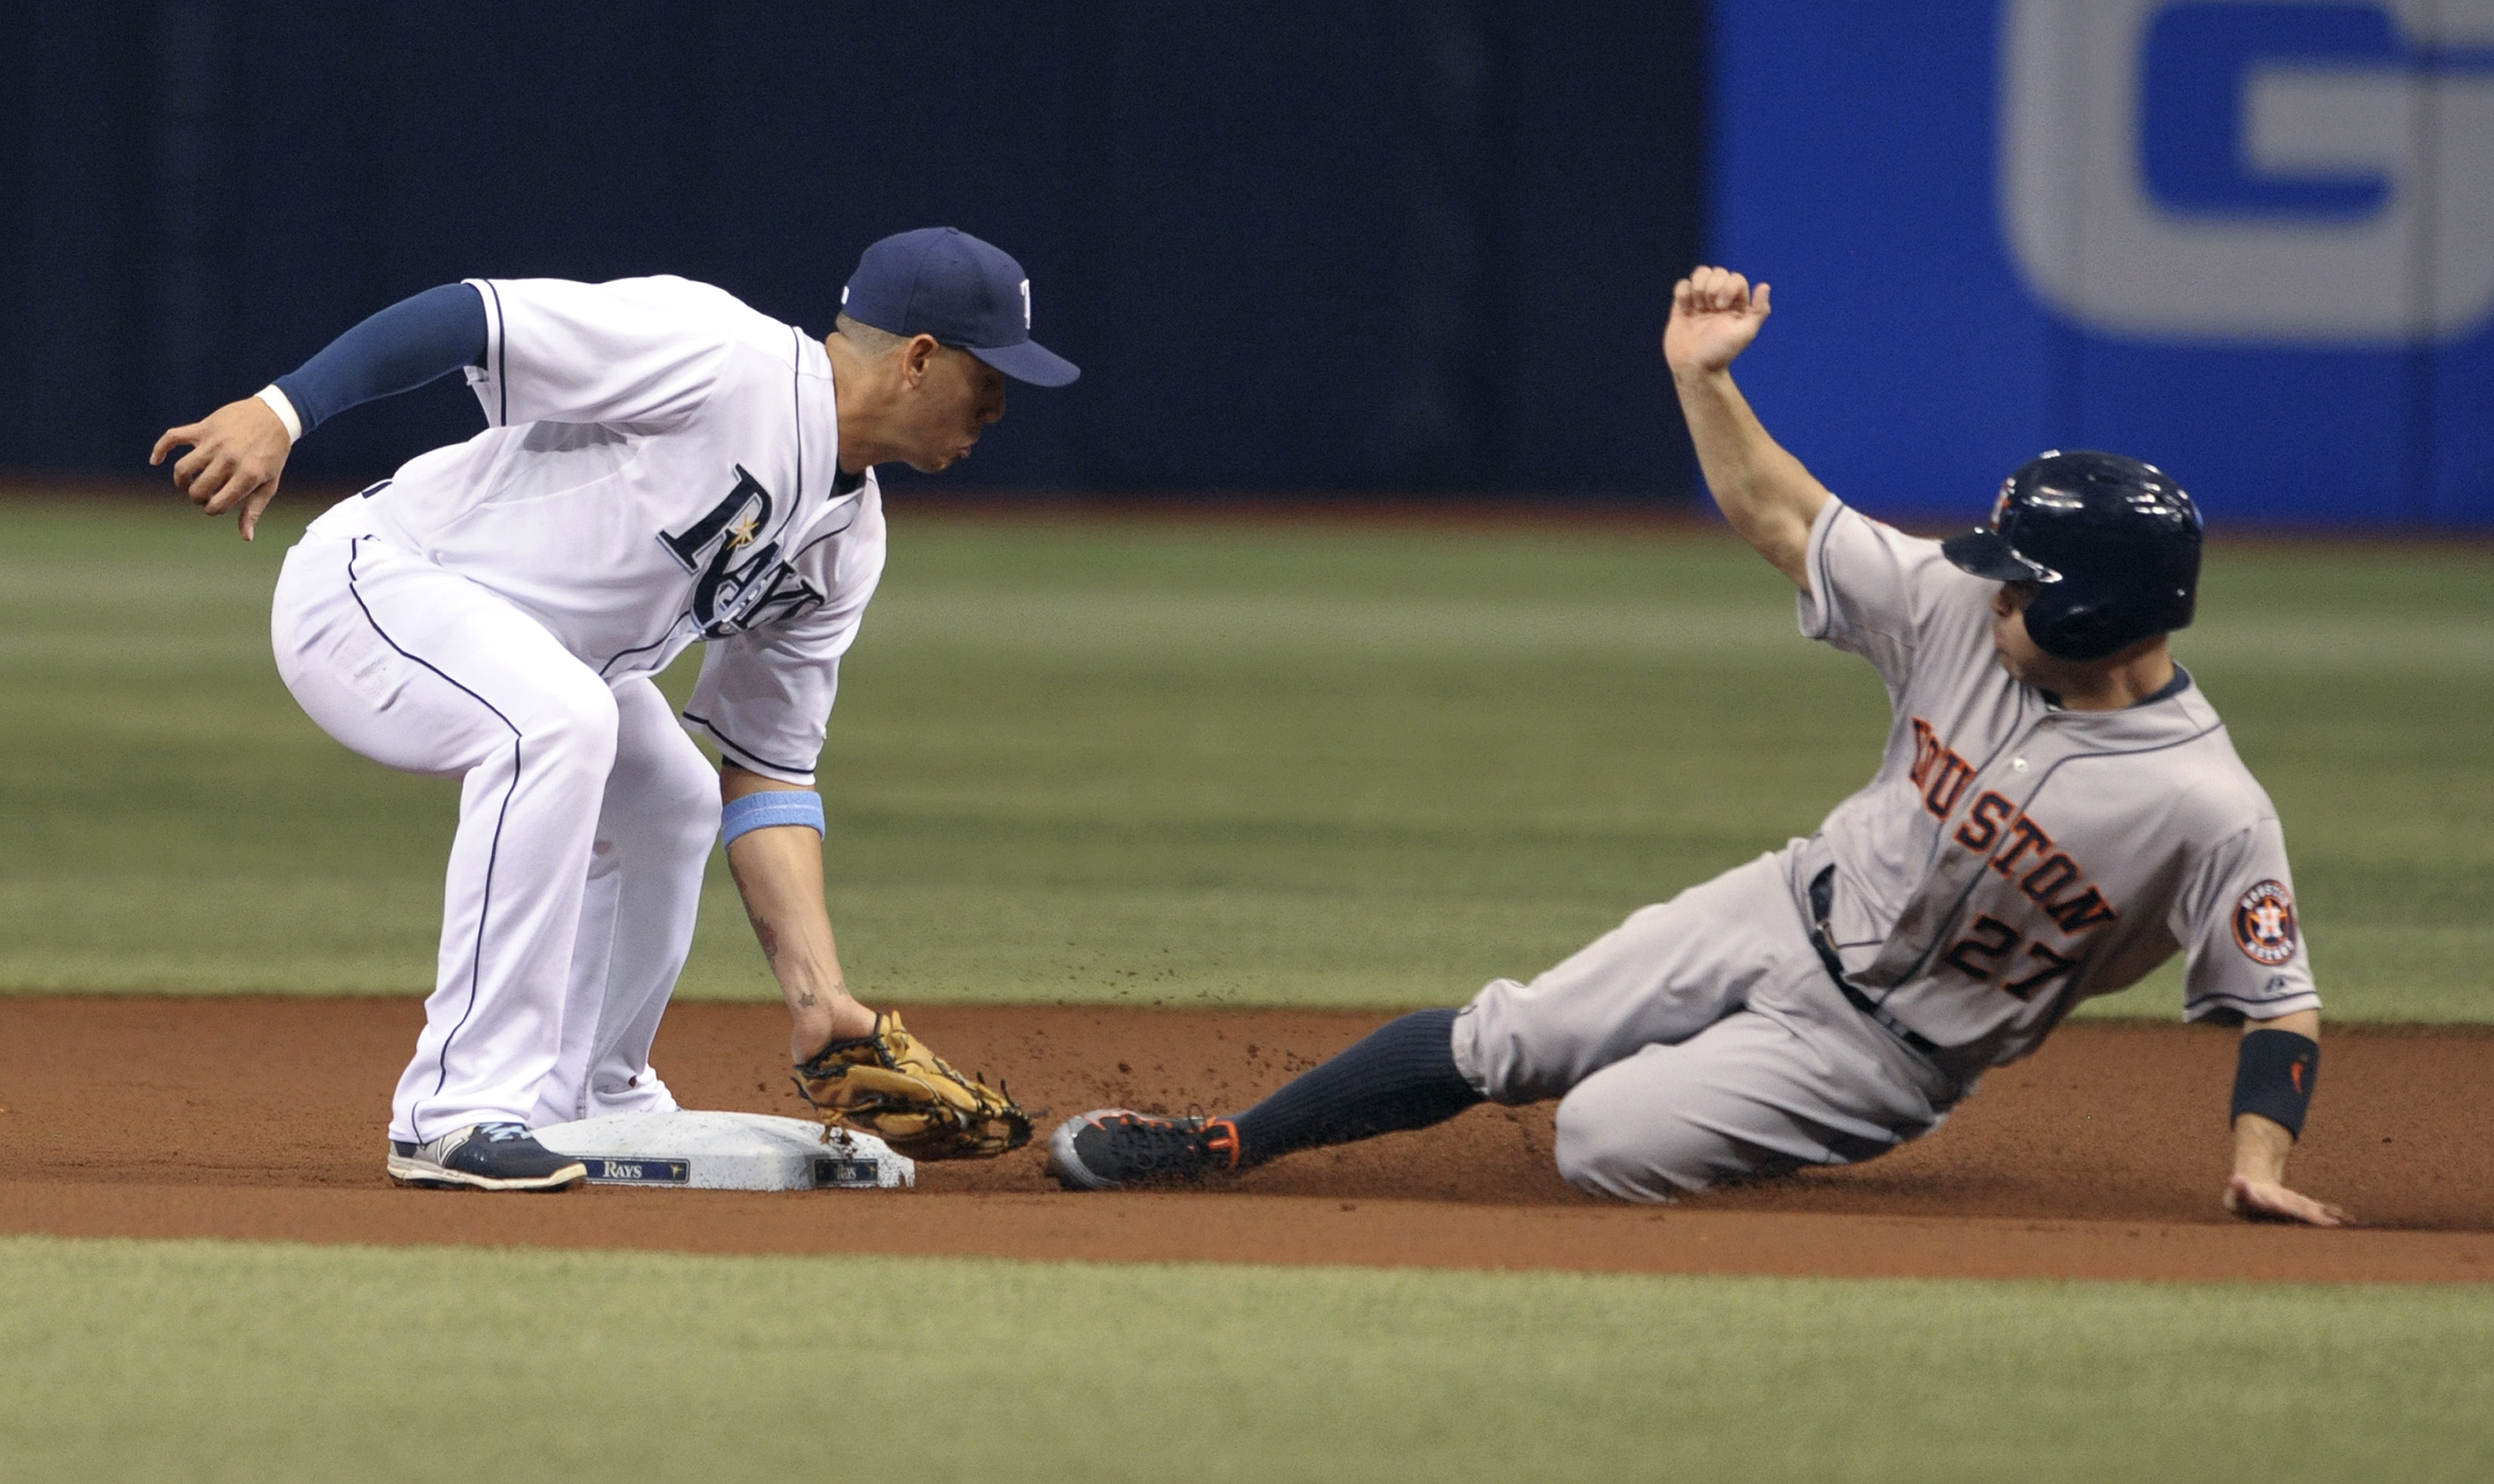 Tampa Bay Rays shortstop Asdrubal Cabrera, left, applies the tag on a stolen base attempt by Houston Astros' Jose Altuve during the first inning of a baseball game Friday, July 10, 2015, in St. Petersburg, Fla. (AP Photo/Steve Nesius)